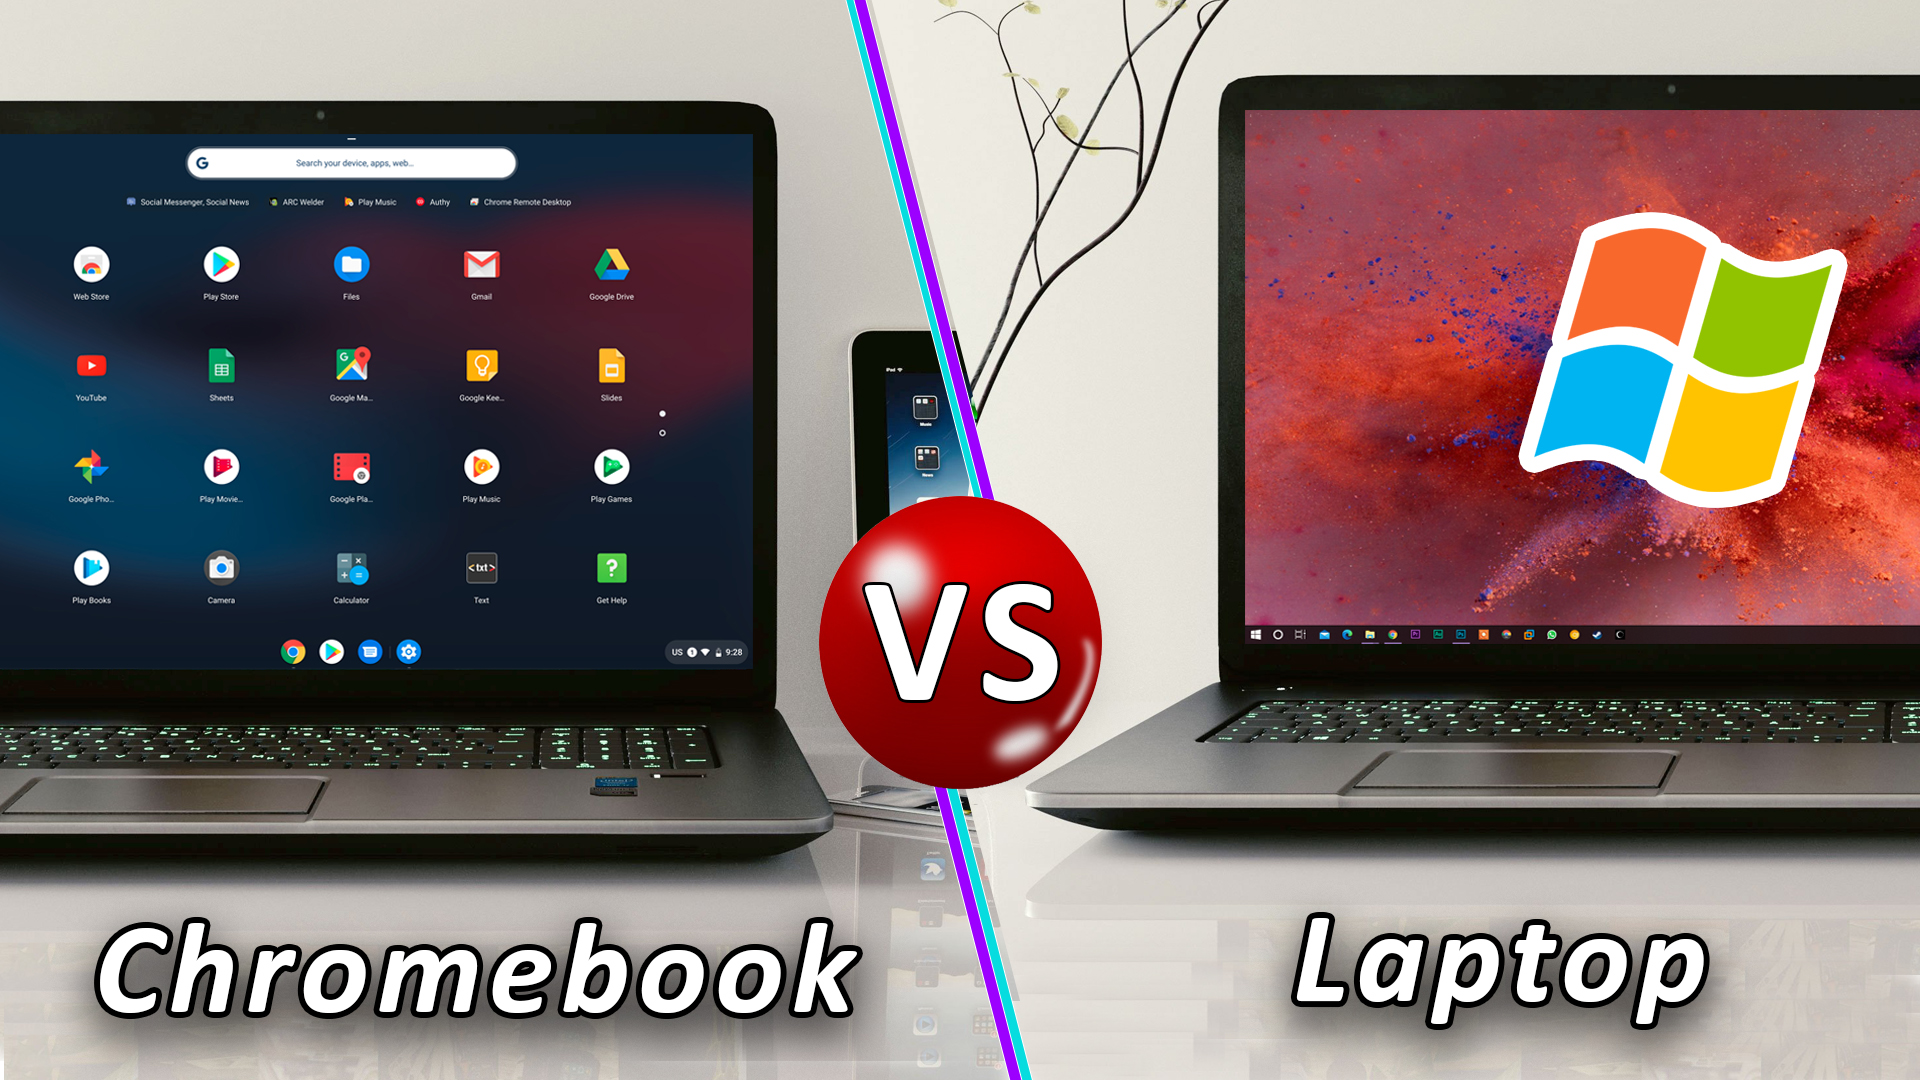 Chromebook Vs Laptop: Which One Should You Pick?